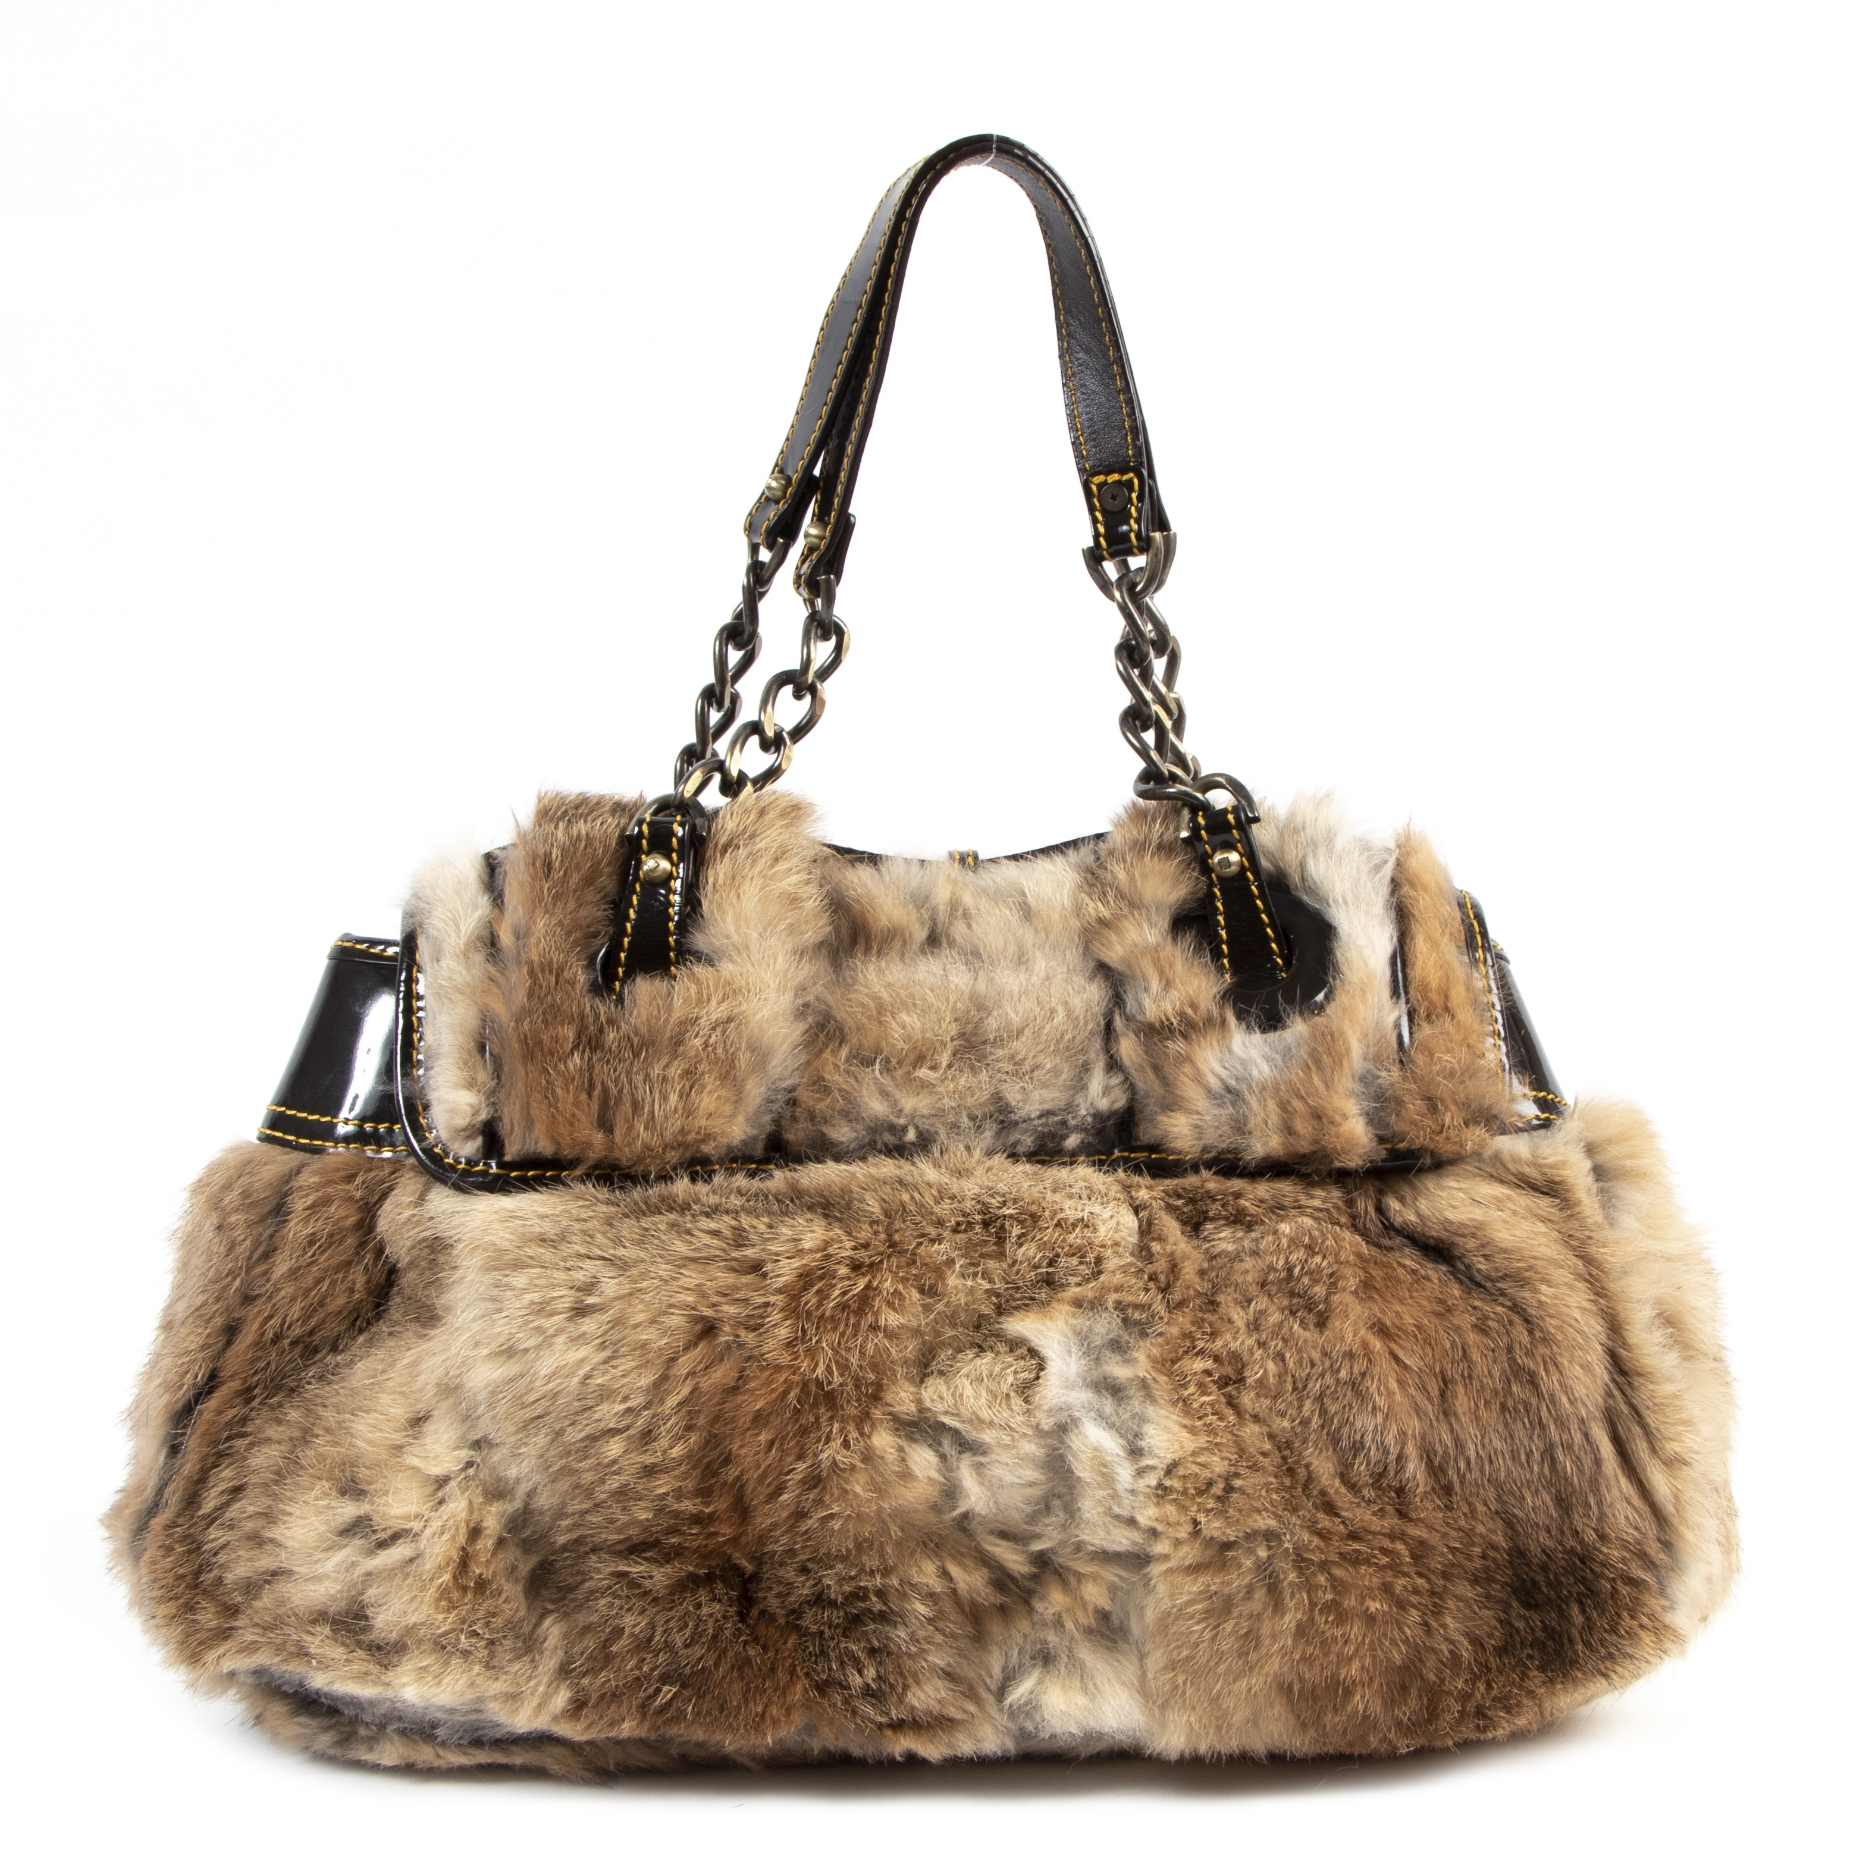 Designer vintage authentic Fendi Fur B Bag for sale online